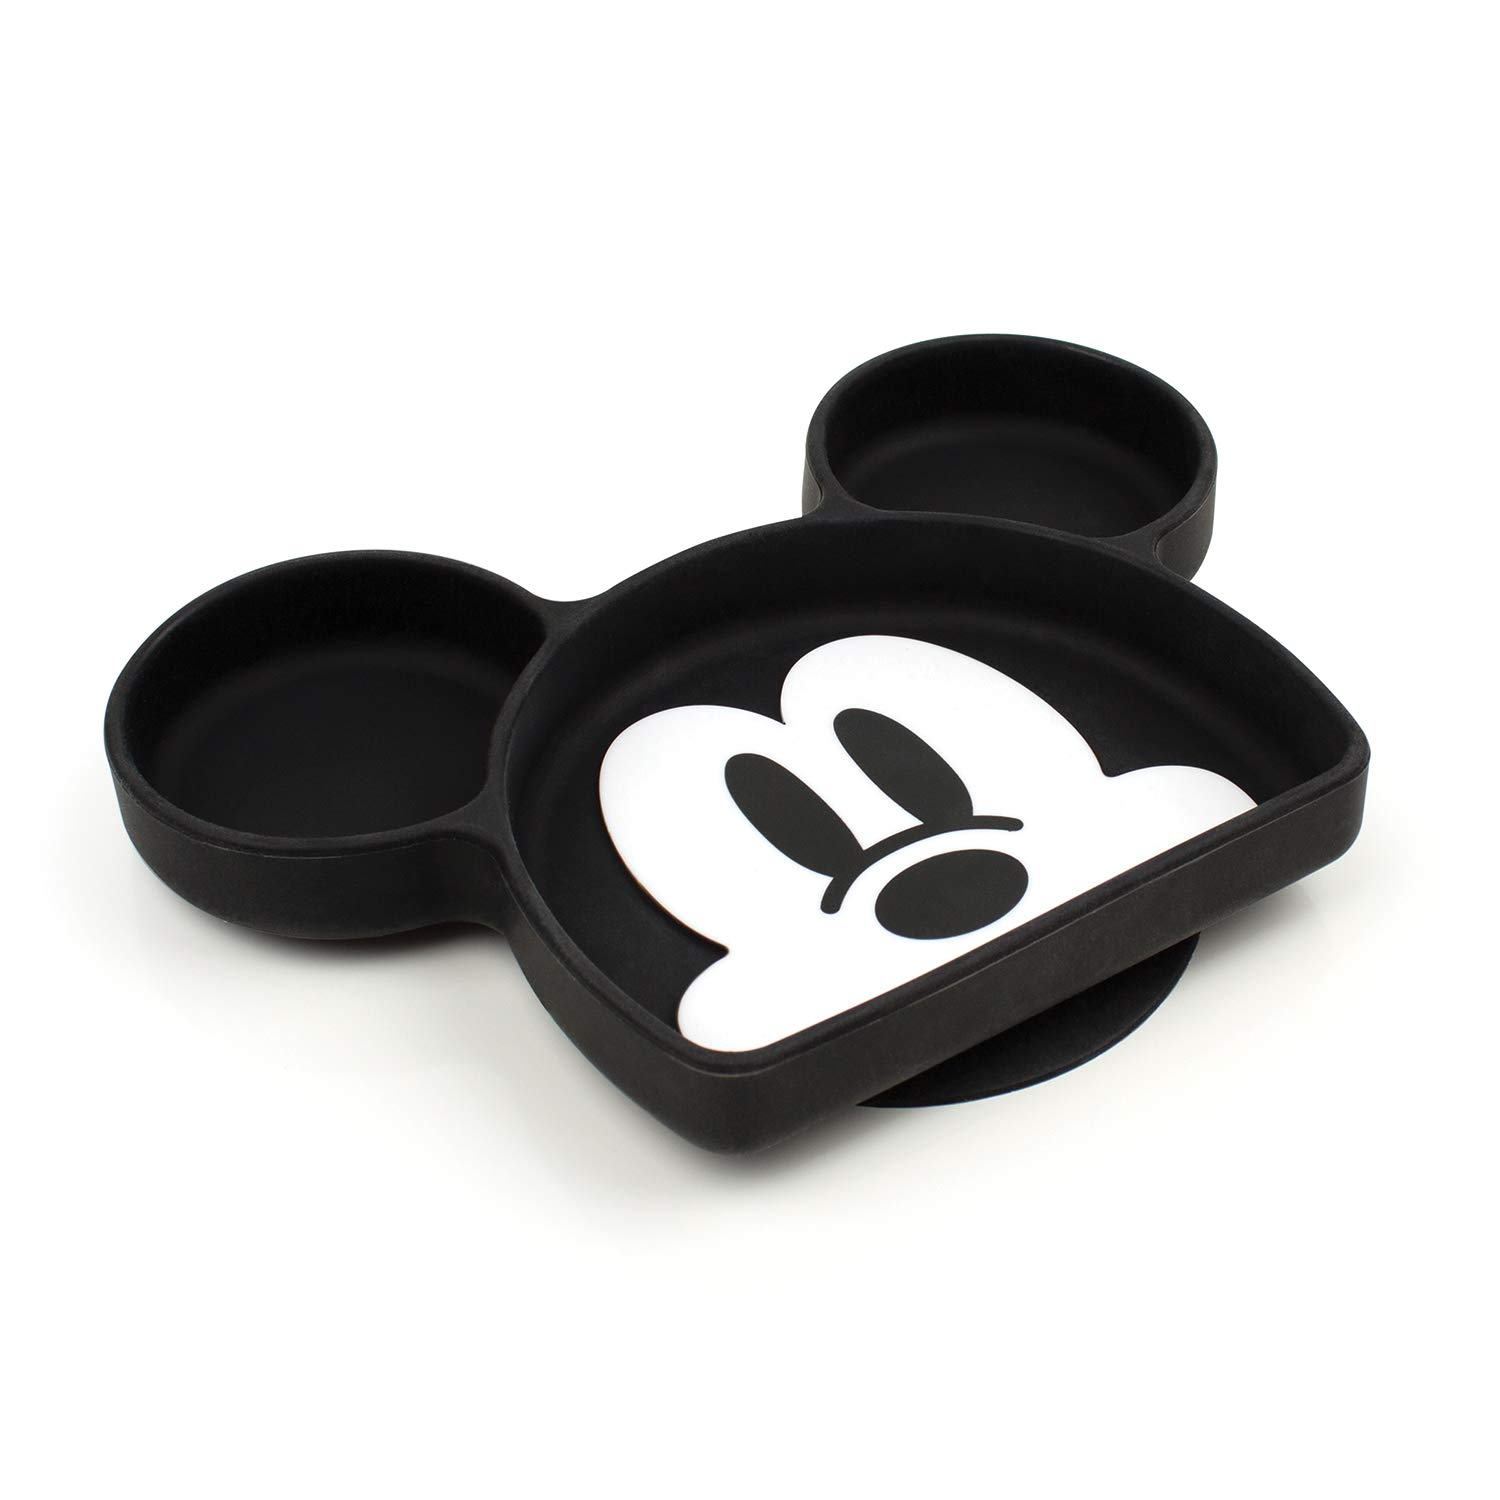 Bumkins Disney Silicone Grip Dish, Suction Plate, Divided Plate, Baby Toddler Plate, BPA Free, Microwave Dishwasher Safe - Mickey Mouse